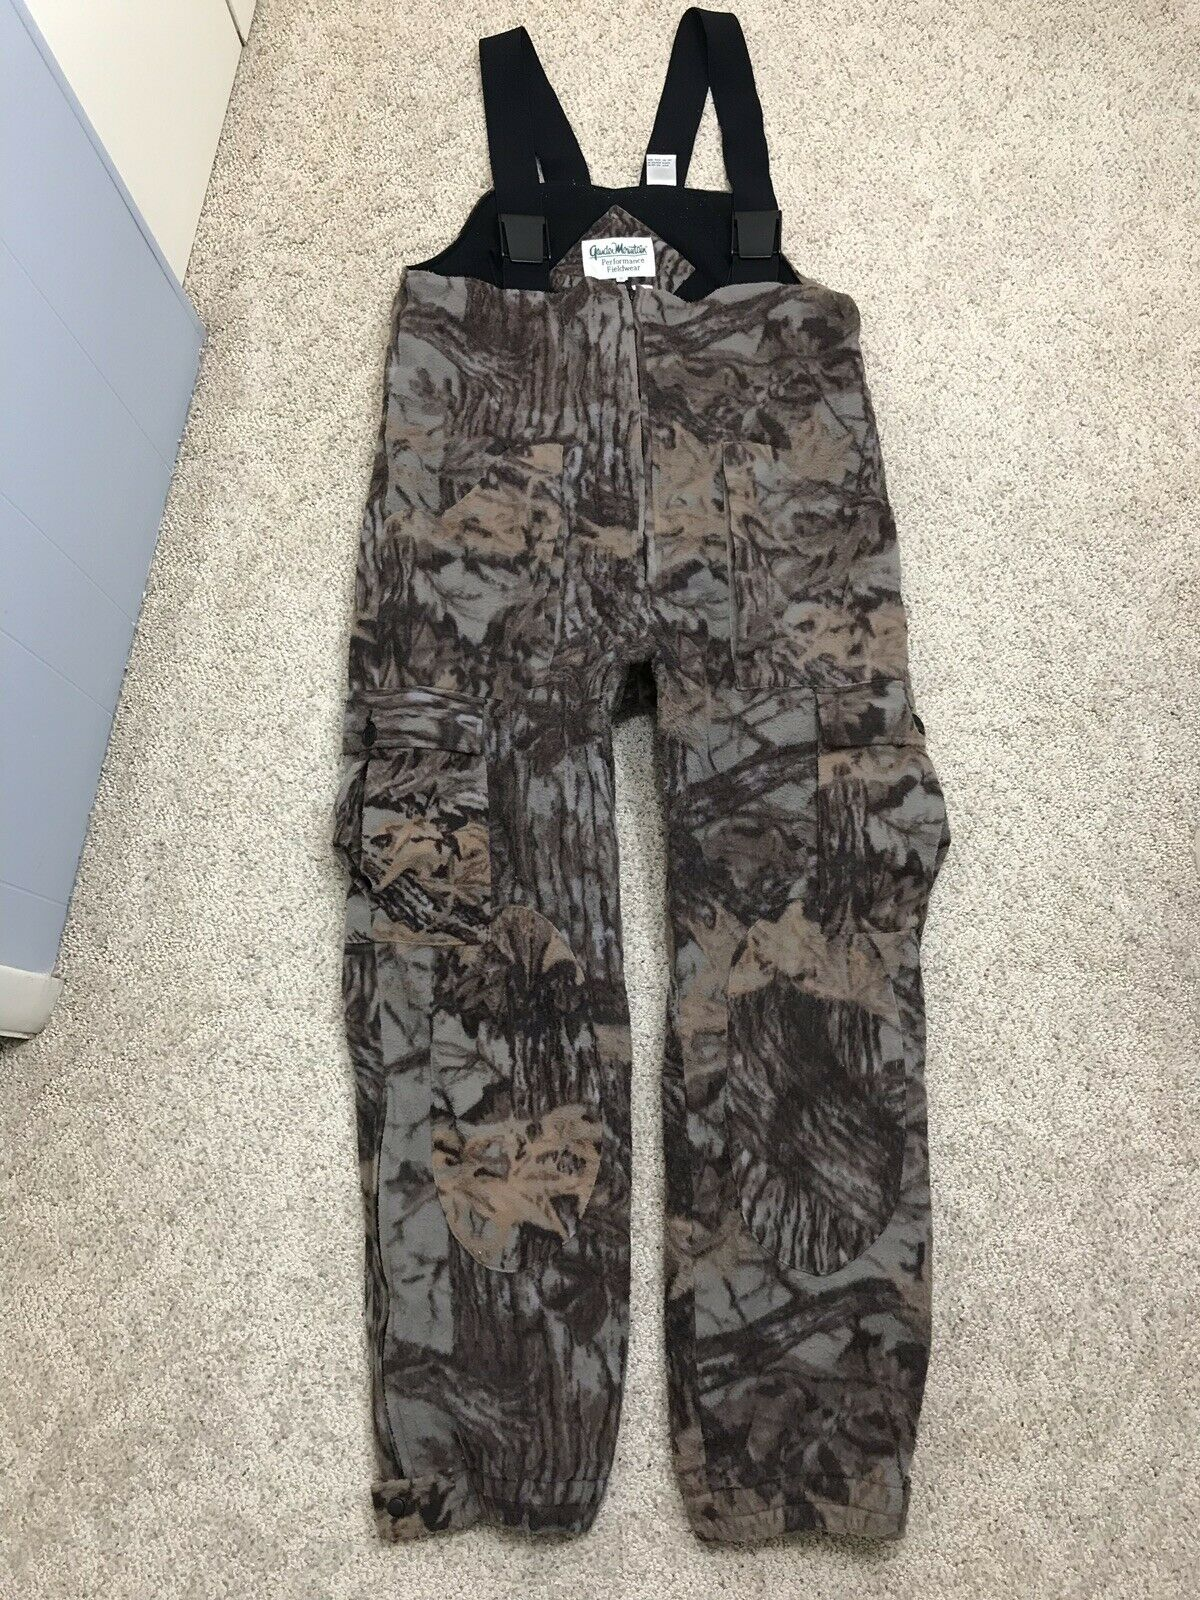 Gander Mountain  Sympatex Soft Shell Waterproof Camo Cargo Hunting Bibs Mens XL  be in great demand